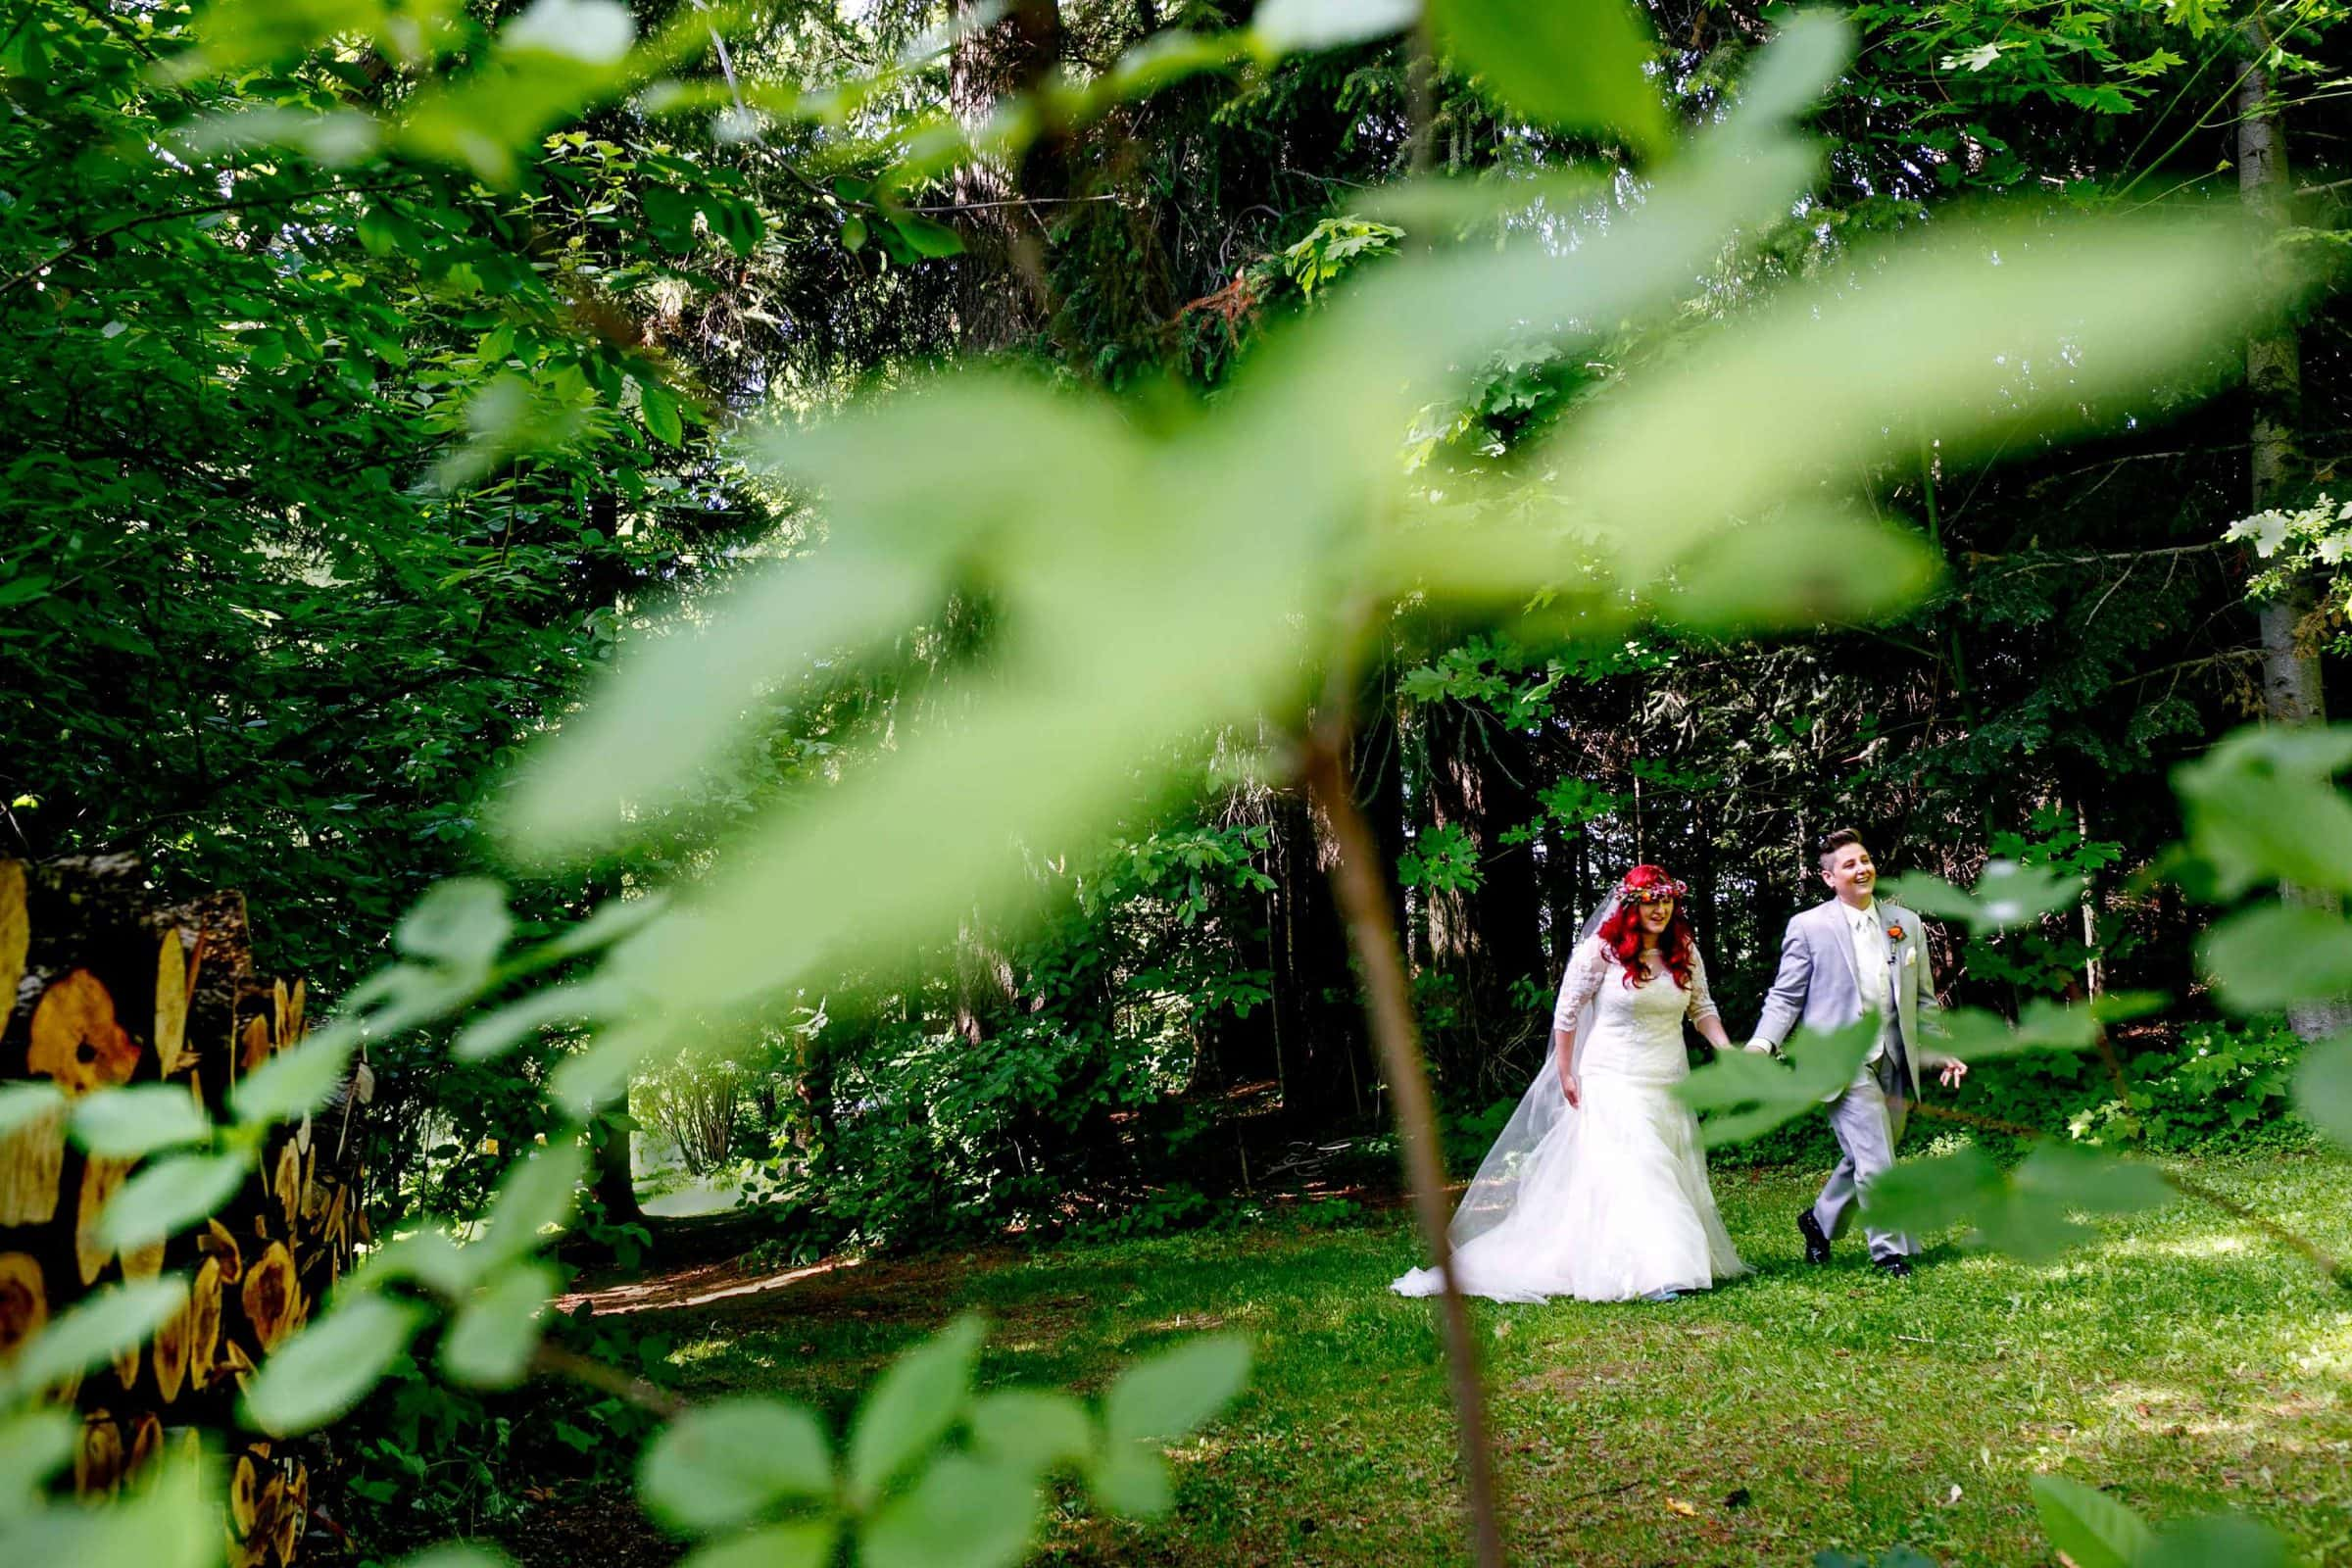 A fun wedding photo of a bride and a bride walking through the forest after their Mt Hood Organic Farms wedding ceremony